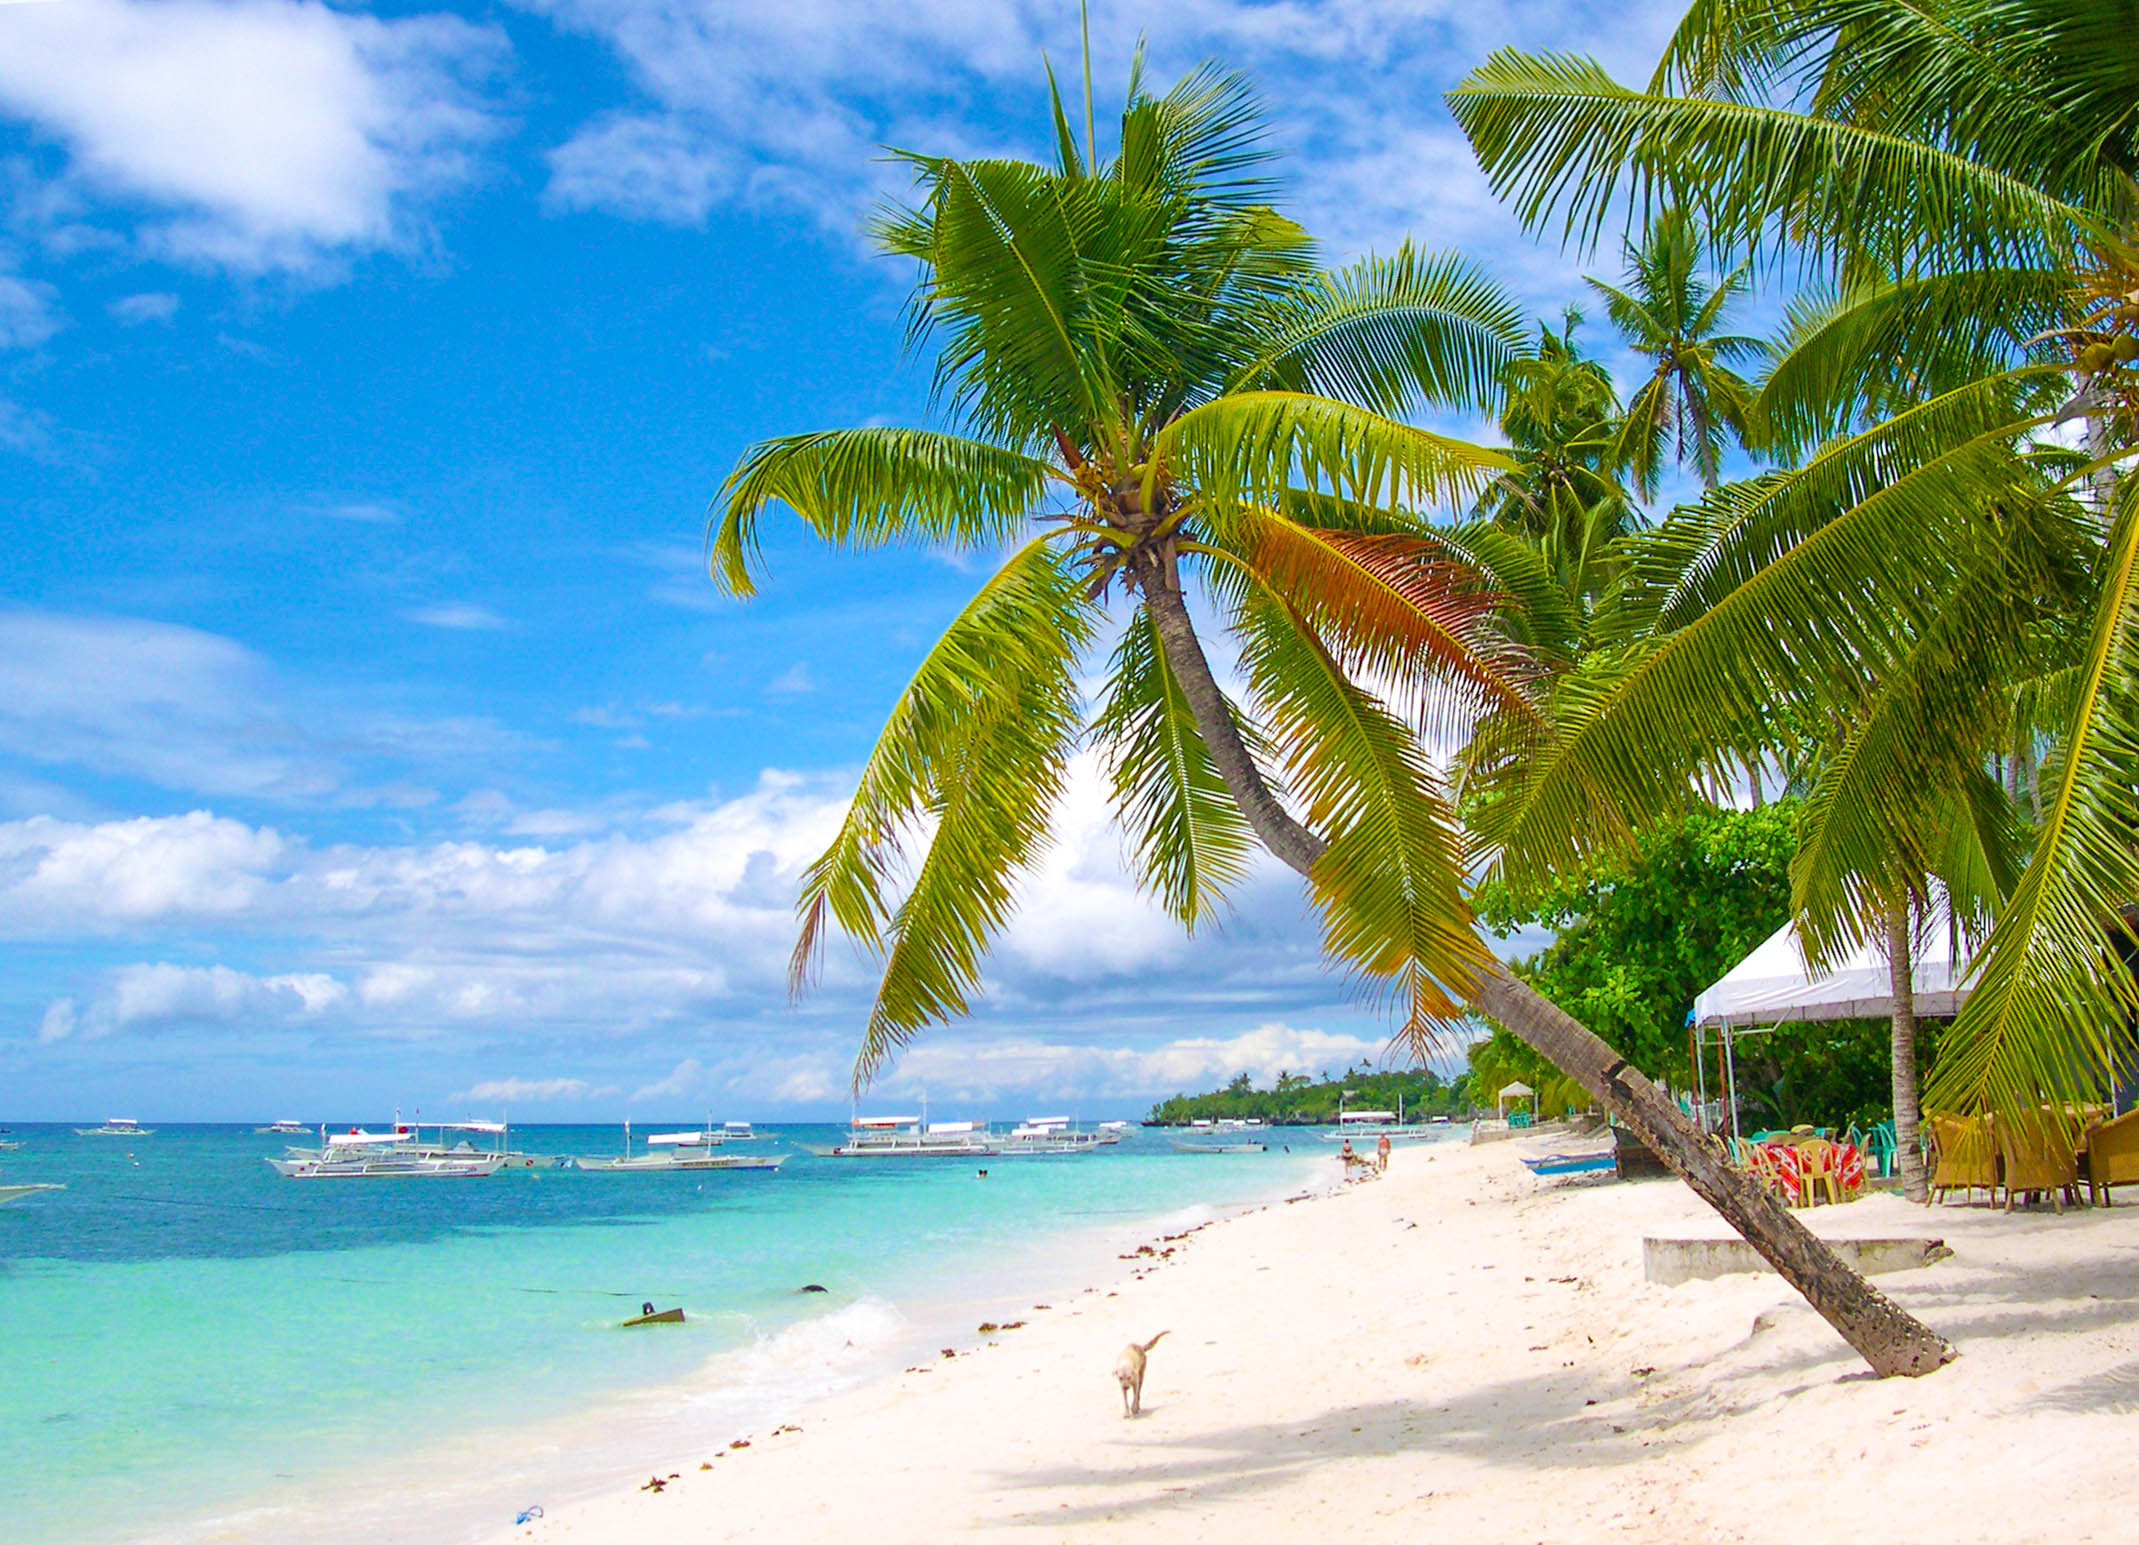 Coconut palm trees leaning over a white sand beach fronting blue and turquoise waters with numerous boats in anchor in Panglao, Philippines